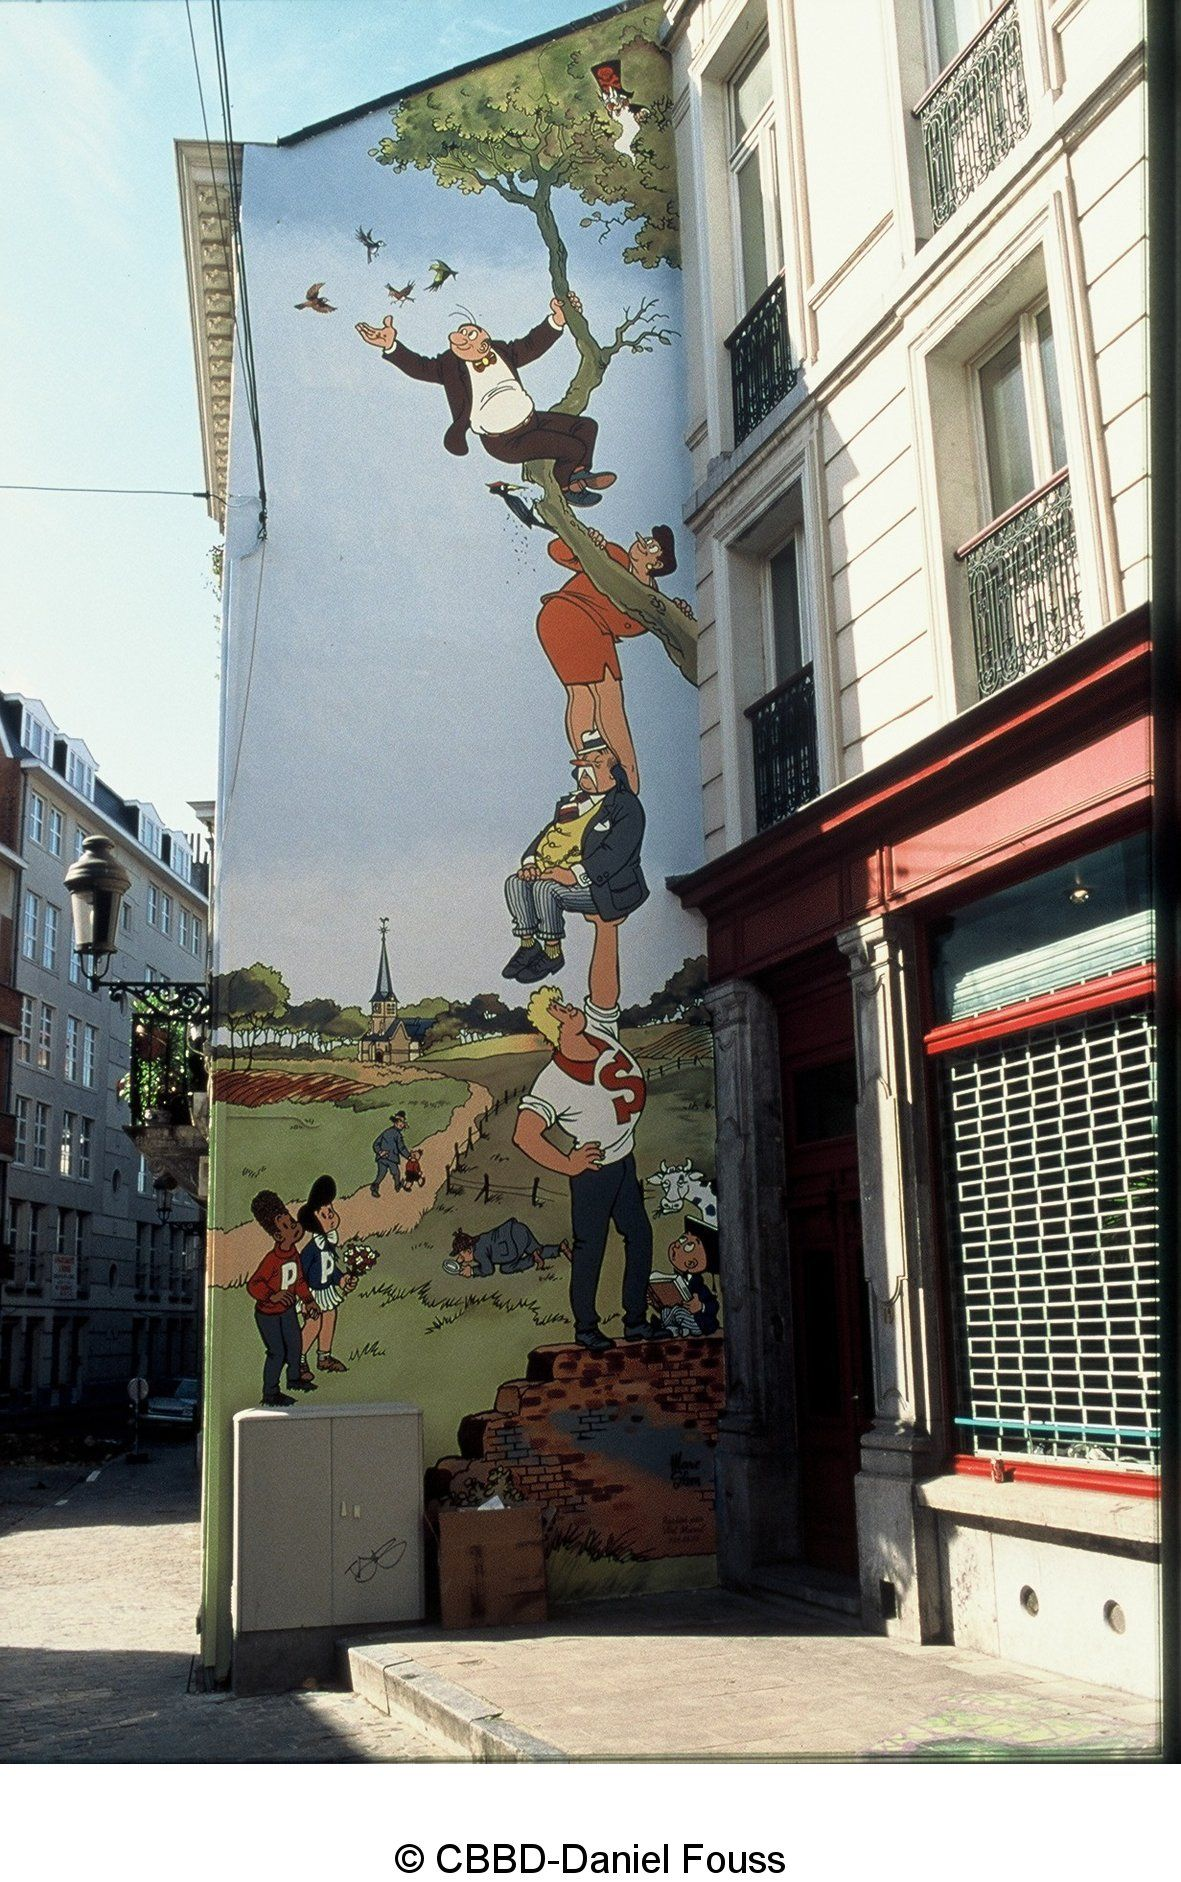 8f7a3f1900 Visit Belgium Comic Strip Walk in Brussels | Places to Go, Stuff to ...